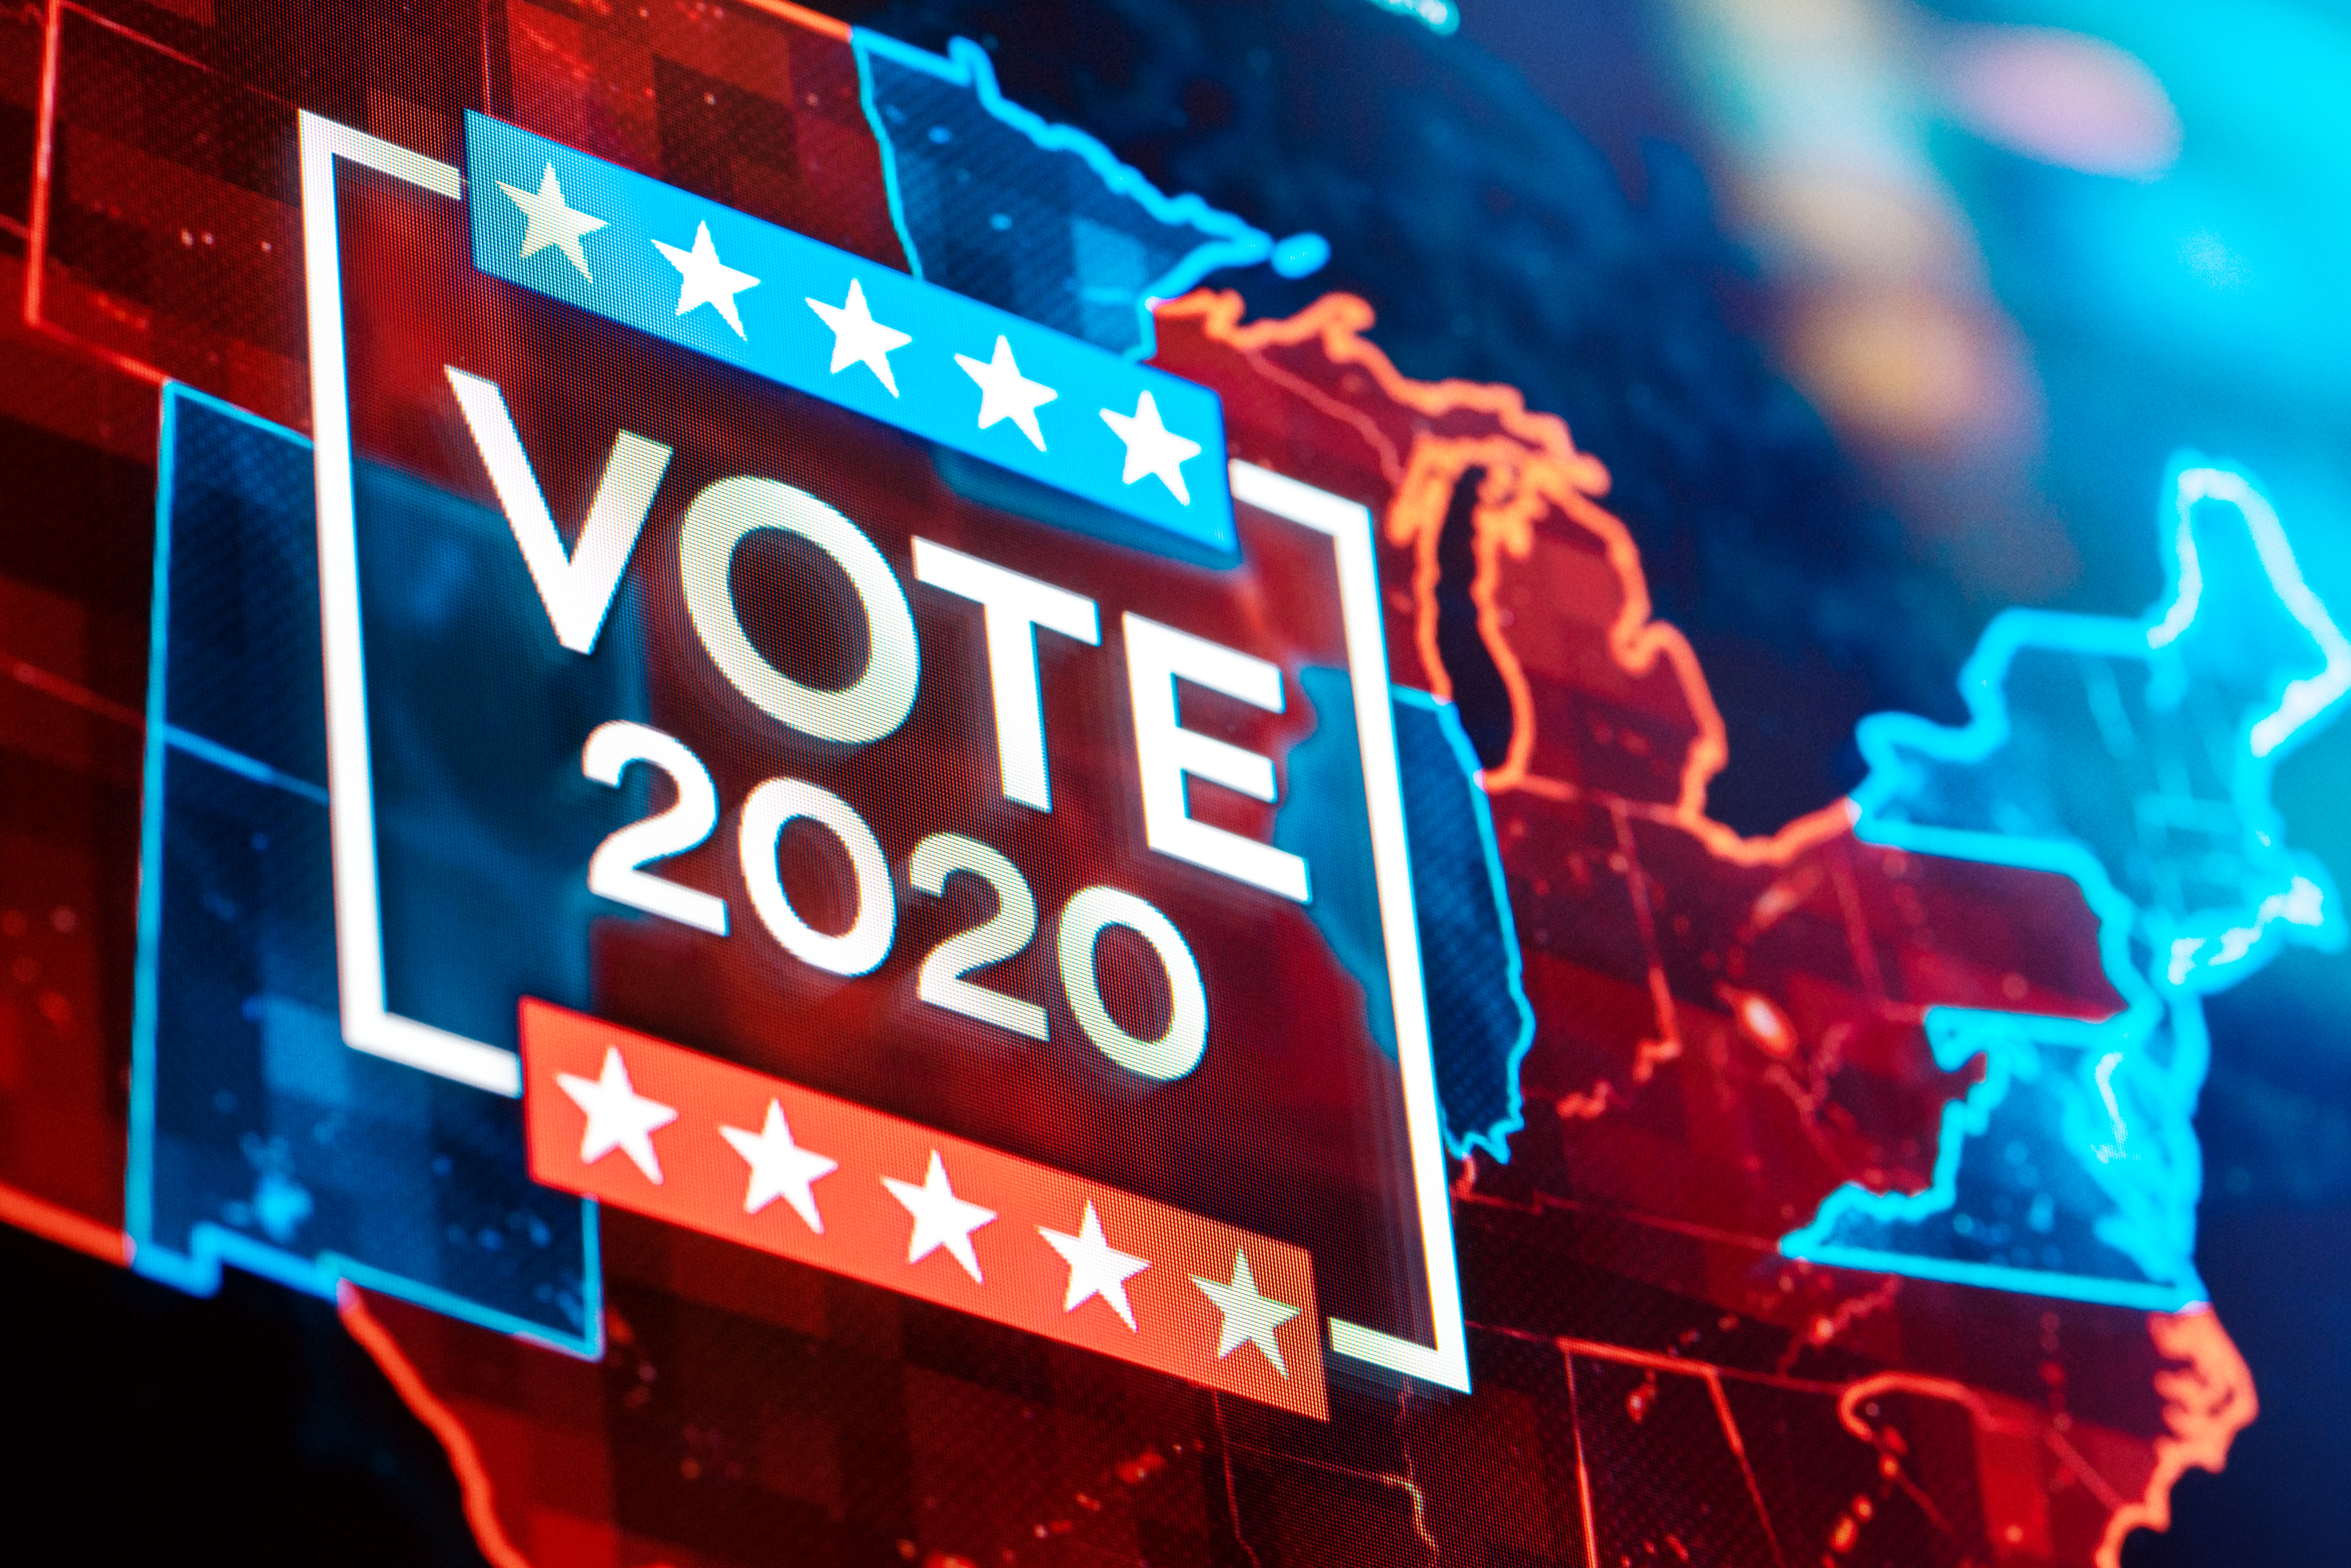 Election 2020: Trump vs. Biden or TikTok vs. Facebook?